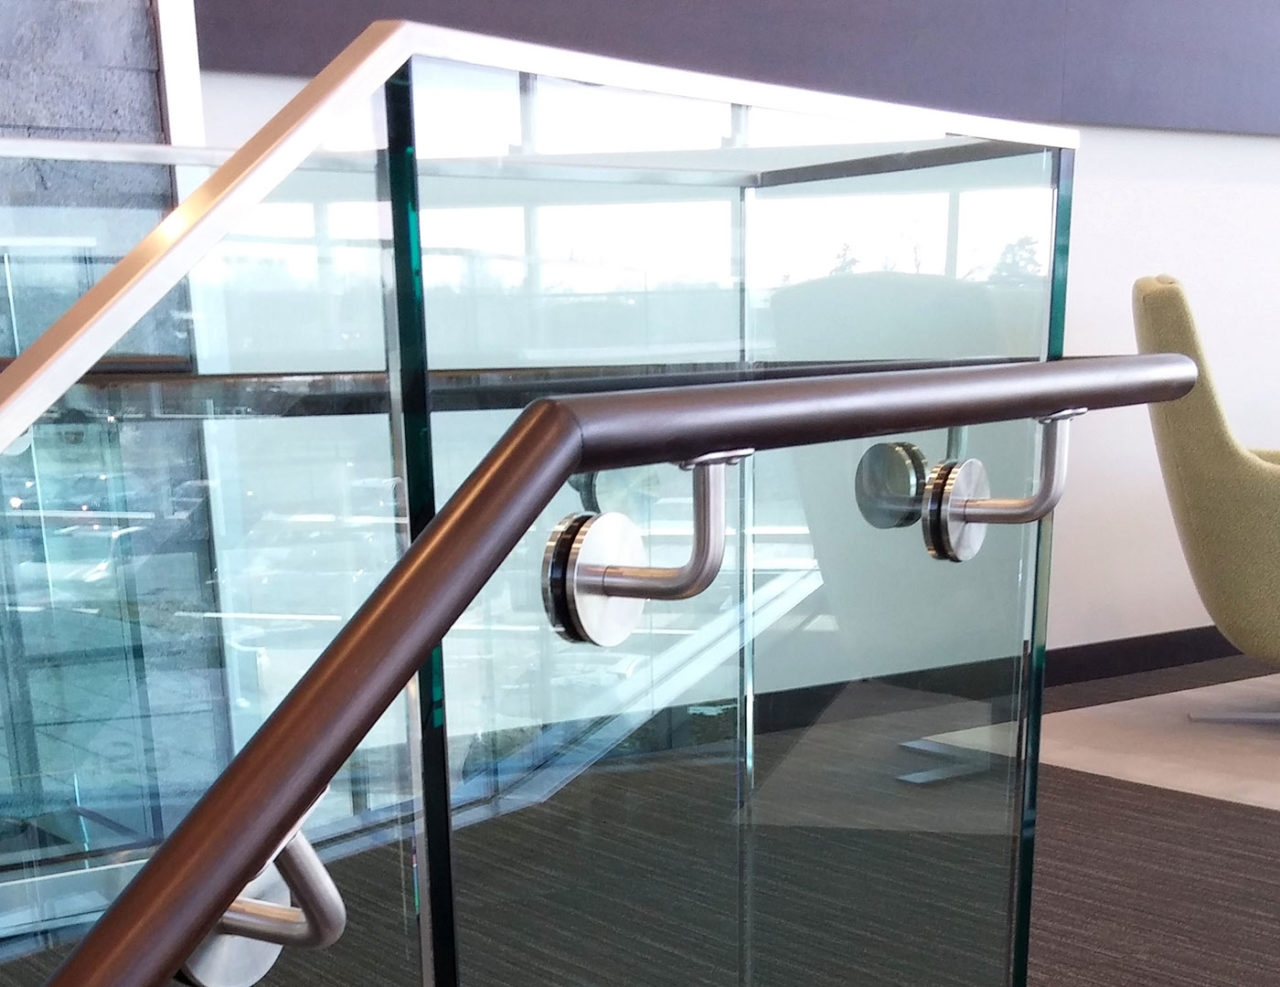 Base Shoe Glass Railing T Mobile Arena Trex Commercial Products   Wooden Handrail With Glass   Contemporary Wood Glass   Oak   Timber   Staircase   Steel